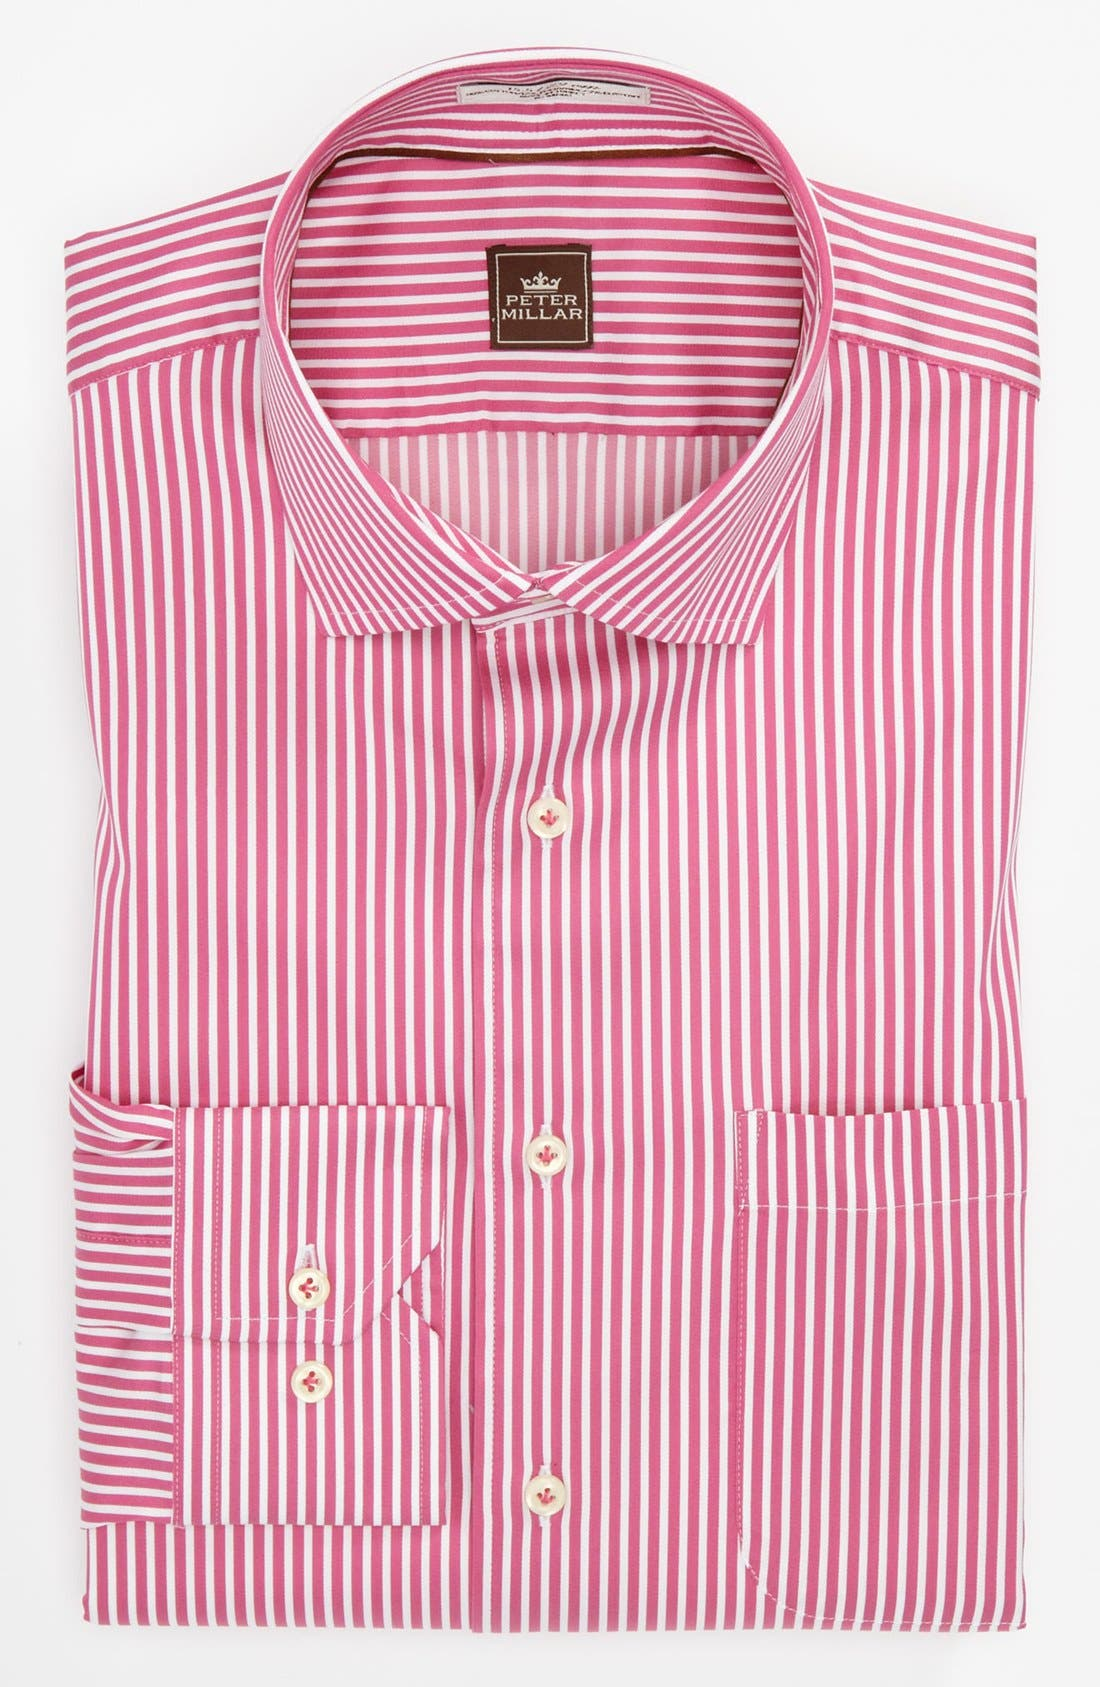 Alternate Image 1 Selected - Peter Millar Regular Fit Dress Shirt